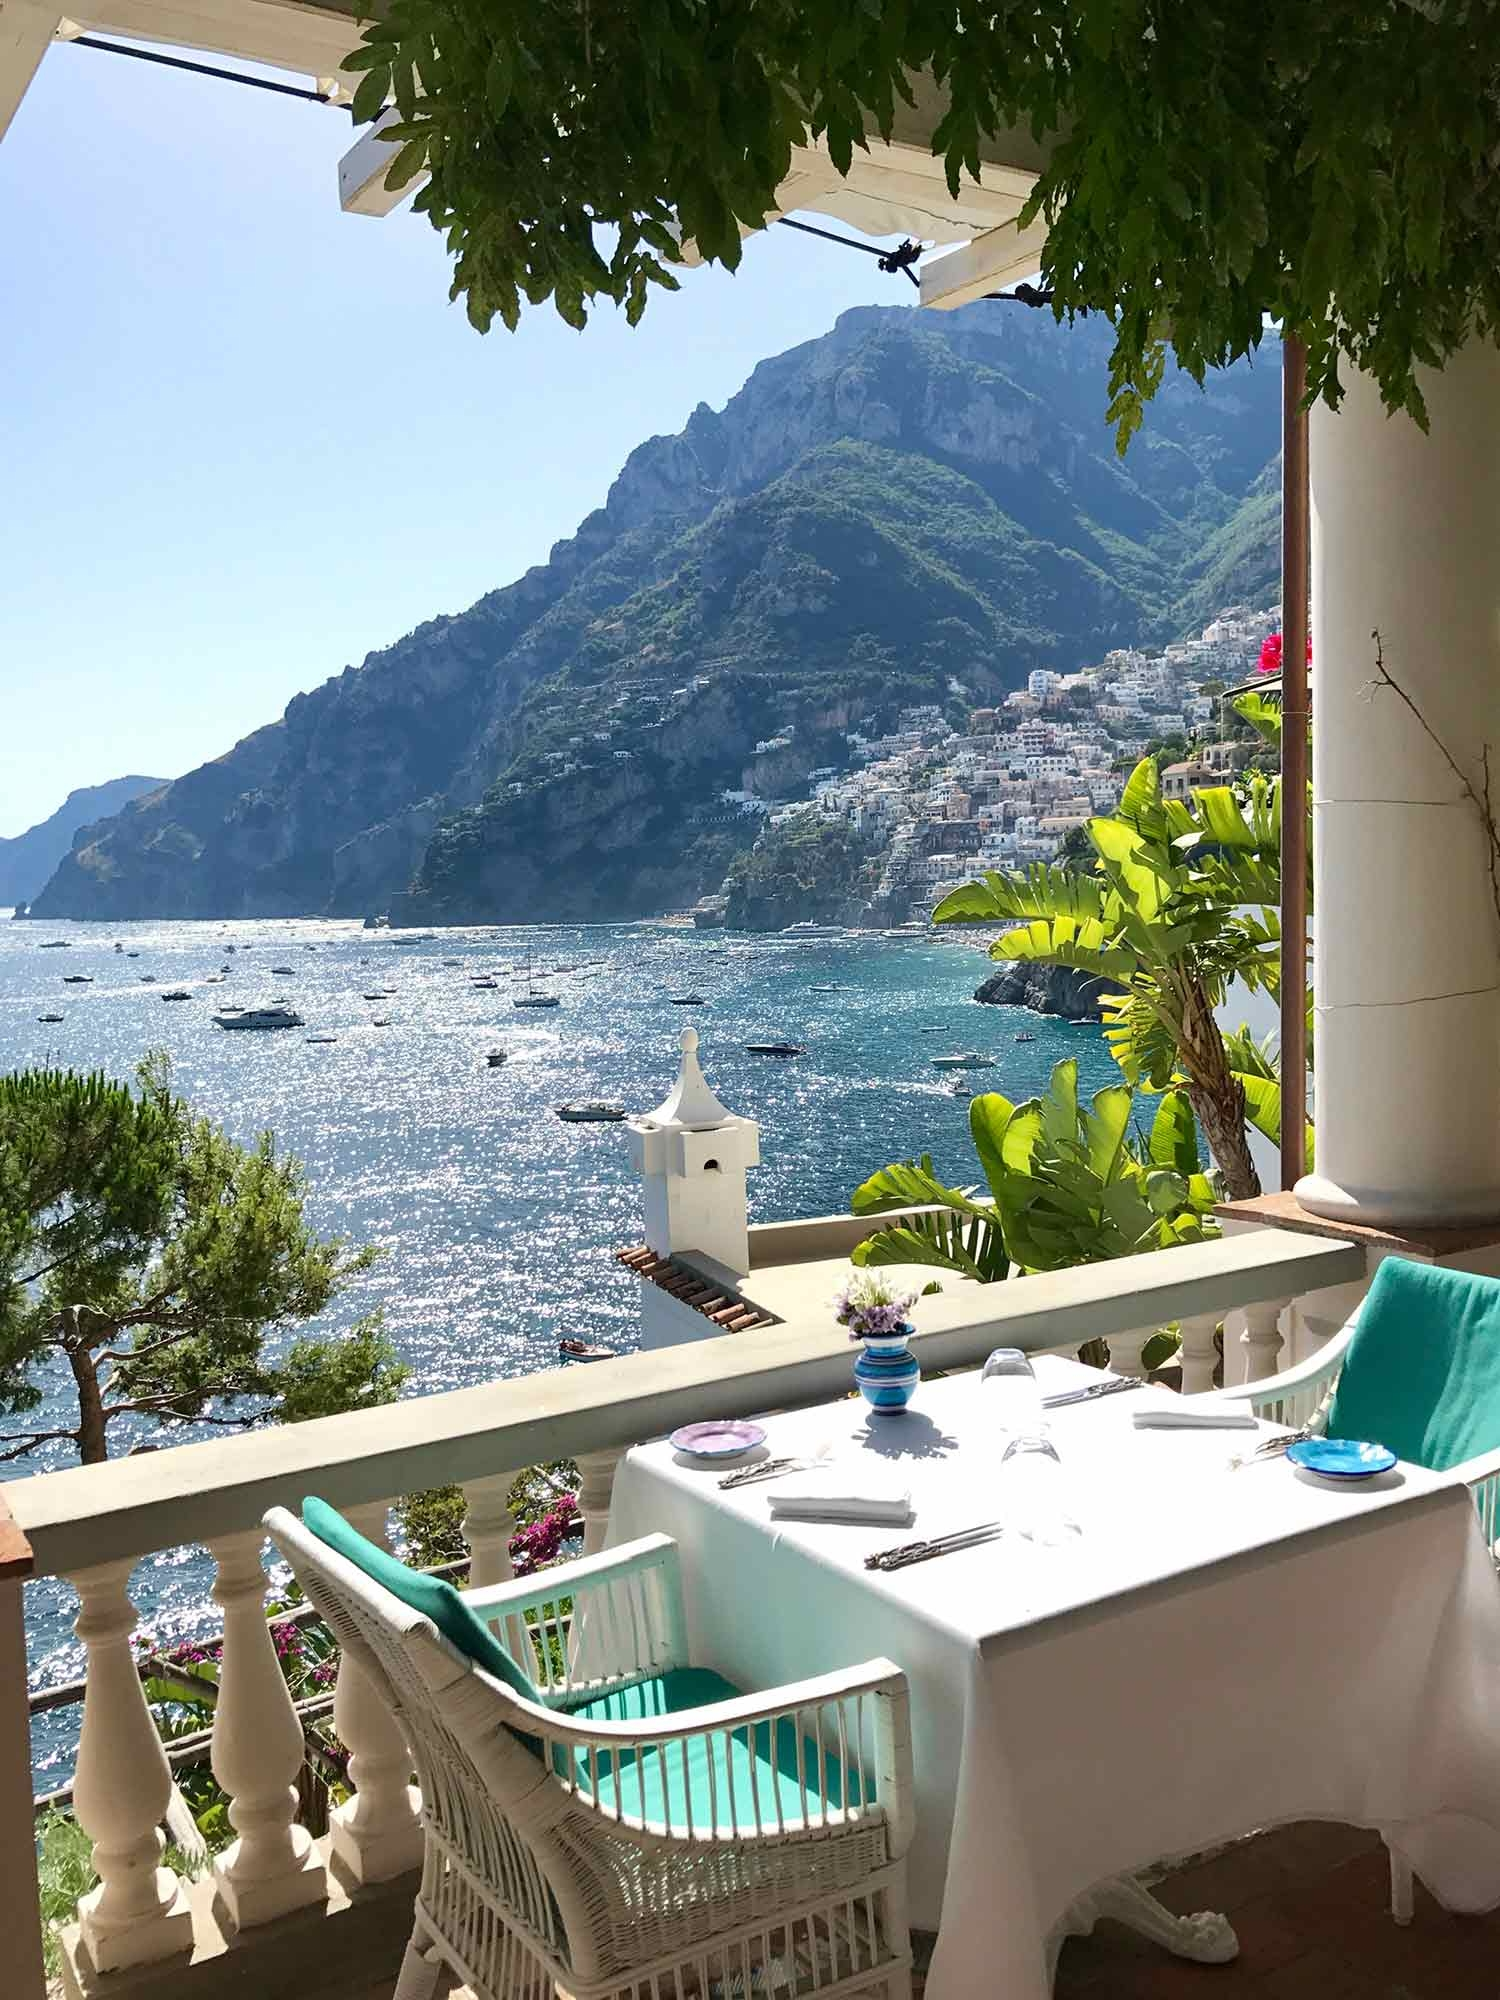 A table for two at Villa Tre Ville overlooks boats and terraced buildings on the Positano coastline